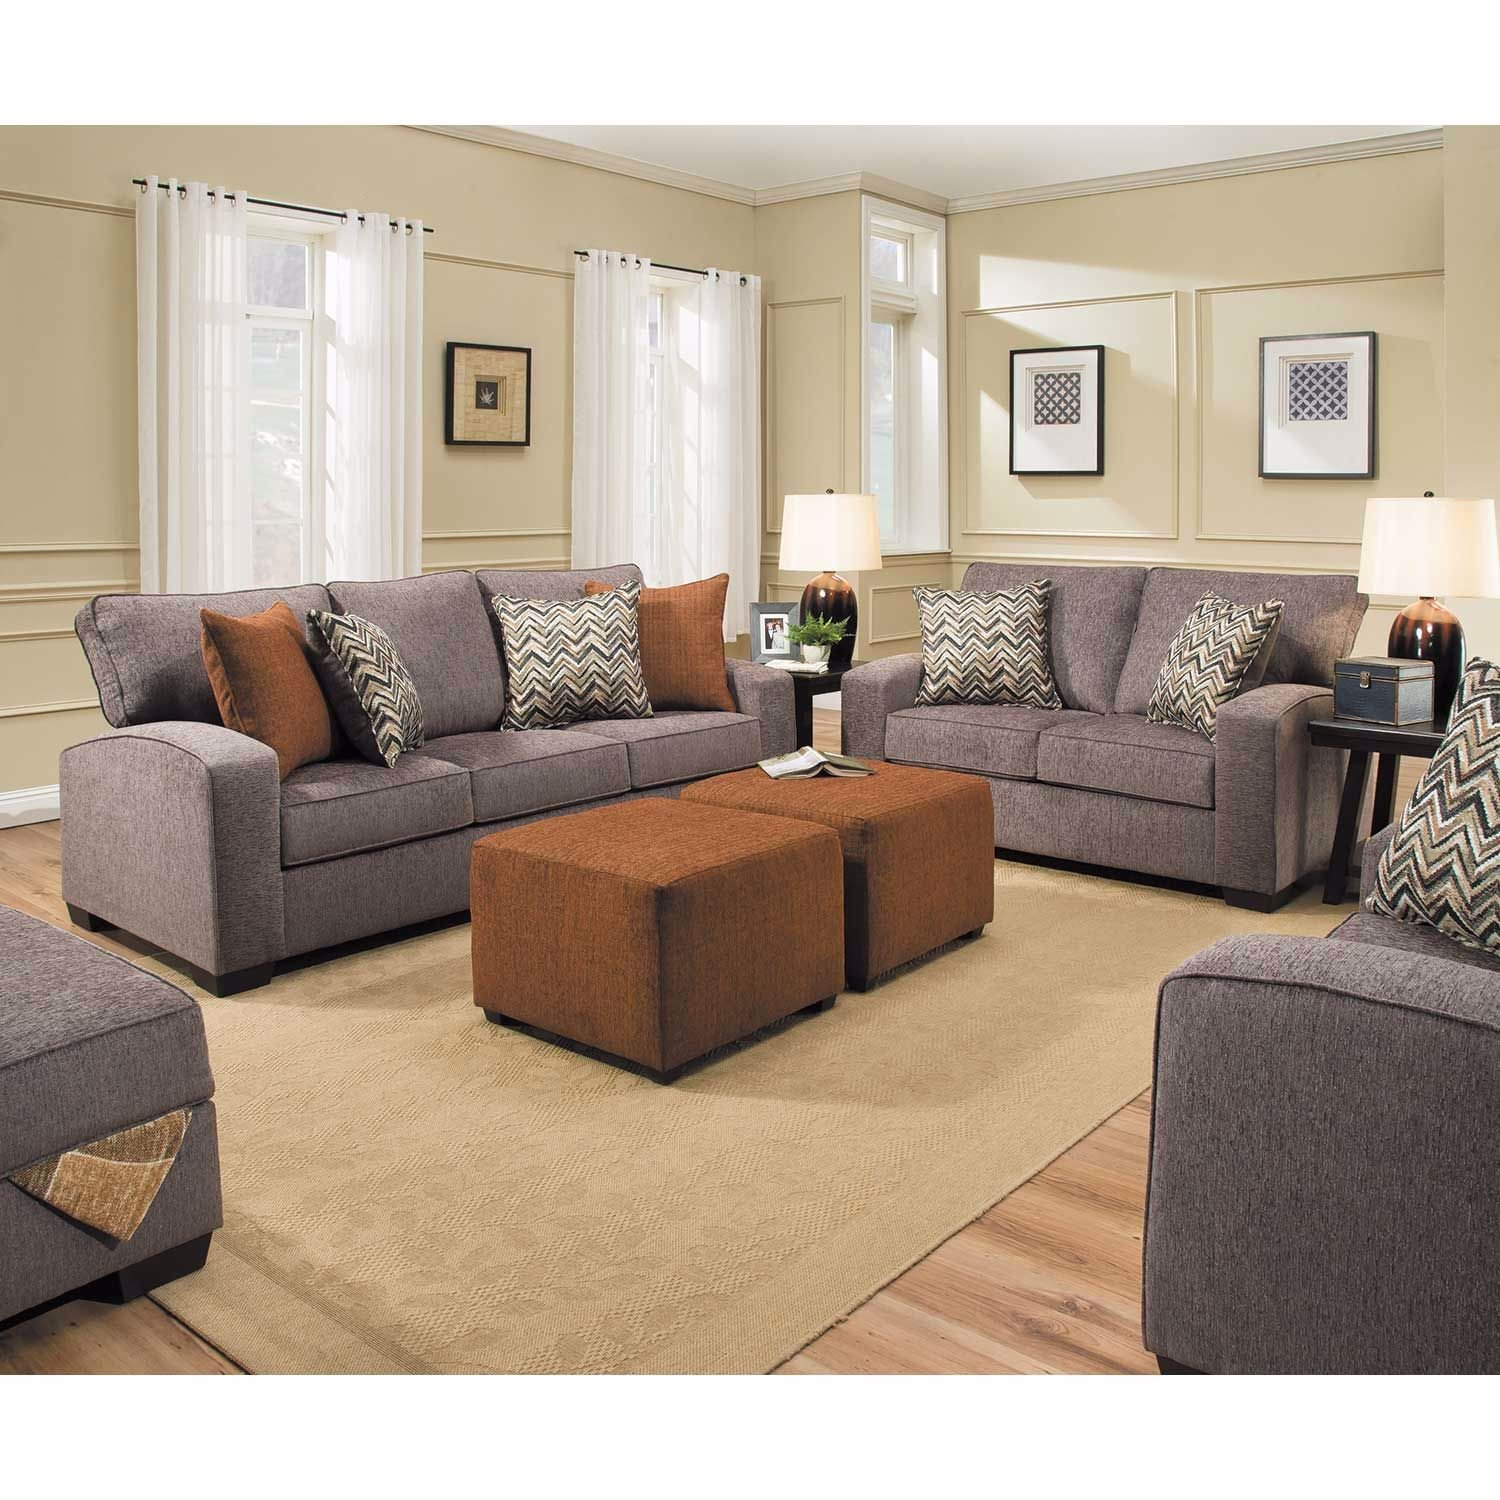 Picture of Endurance Shadow Sofa